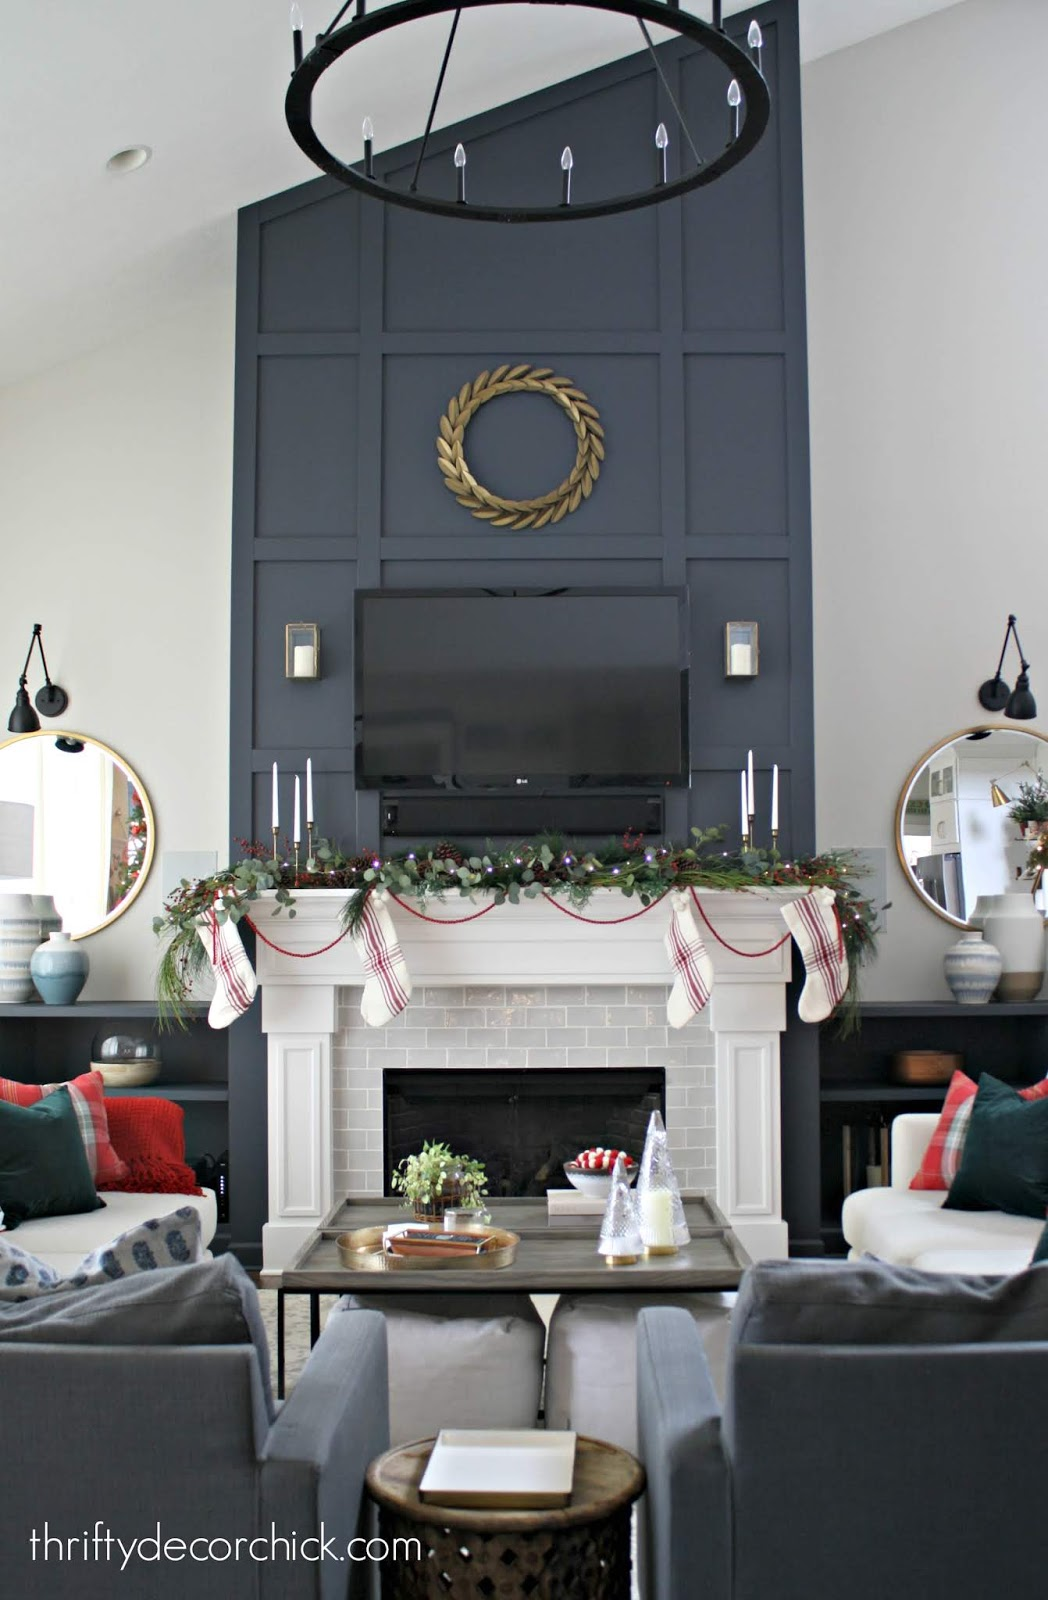 Inexpensive grid trim work on fireplace wall